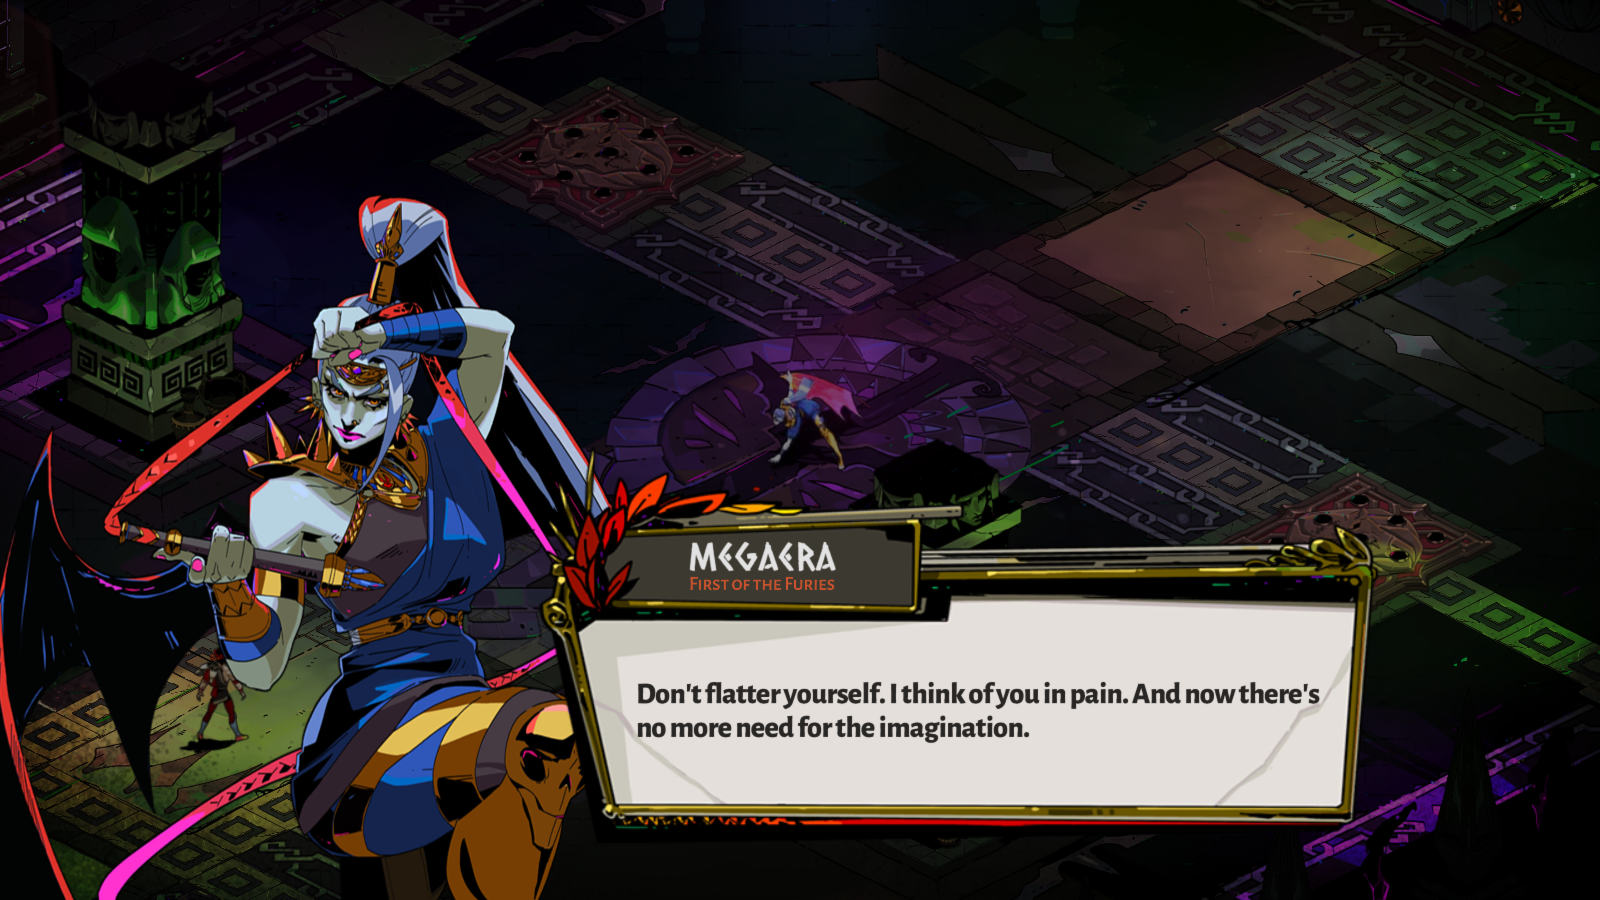 Megaera is one of the many bosses in Hades who enjoys giving Zagreus a hard time